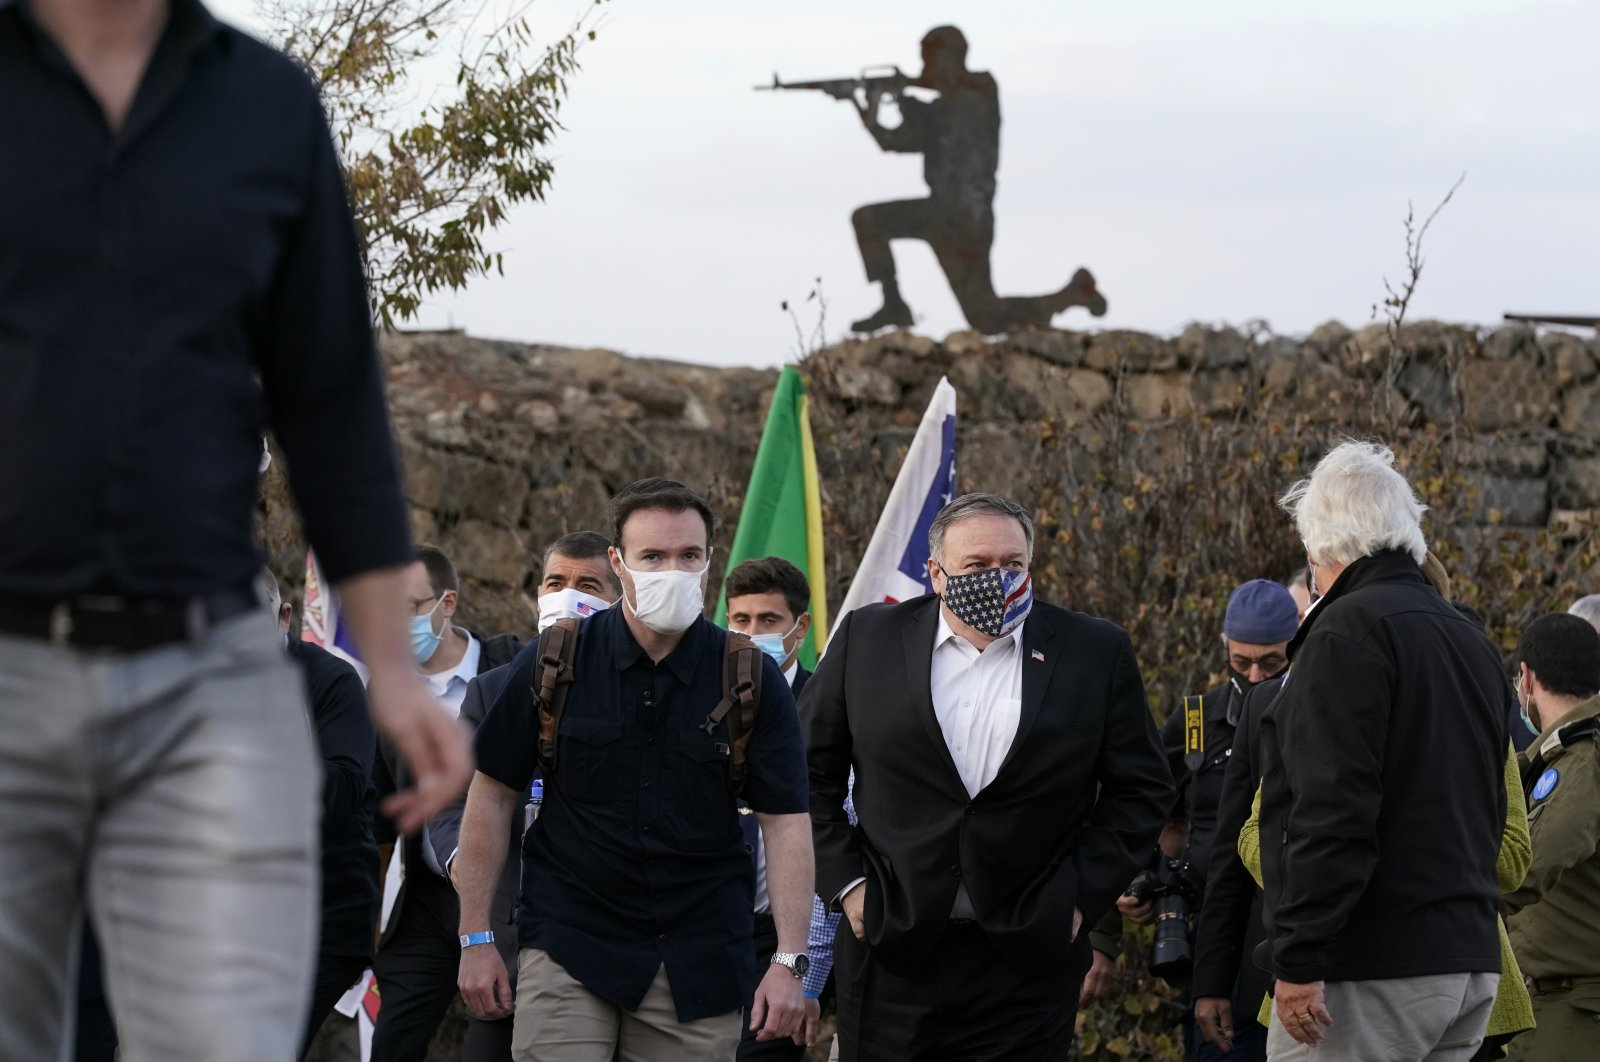 U.S. Secretary of State Mike Pompeo departs a security briefing on Mount Bental in the Israeli-occupied Golan Heights, near the Israeli-Syrian border, Nov. 19, 2020. (AP Photo)